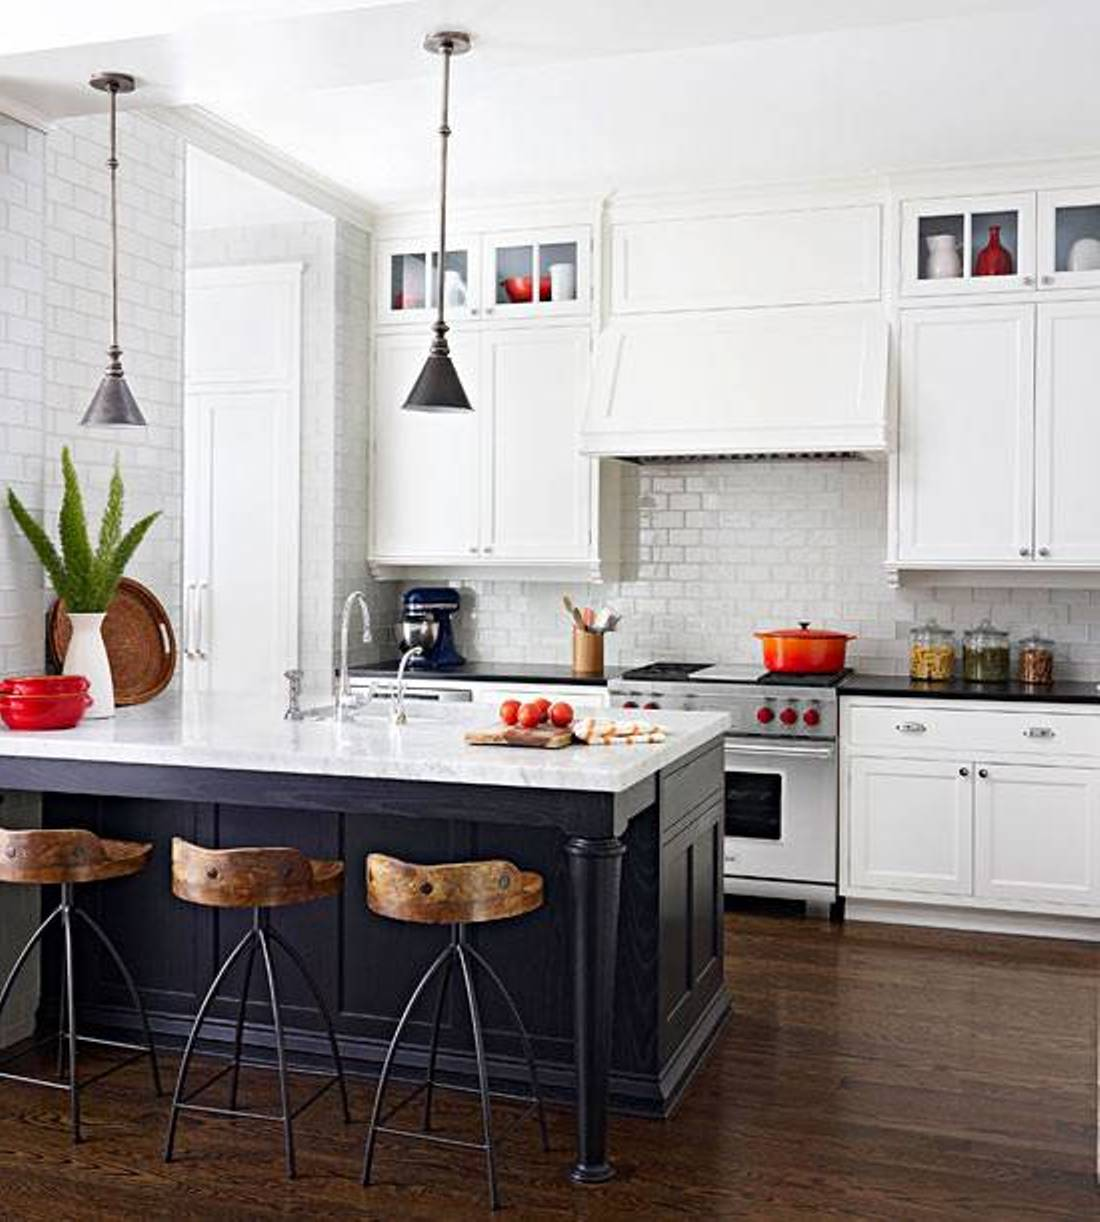 Open Kitchen Island: Open Kitchen Design: Why You Need It And How To Style It